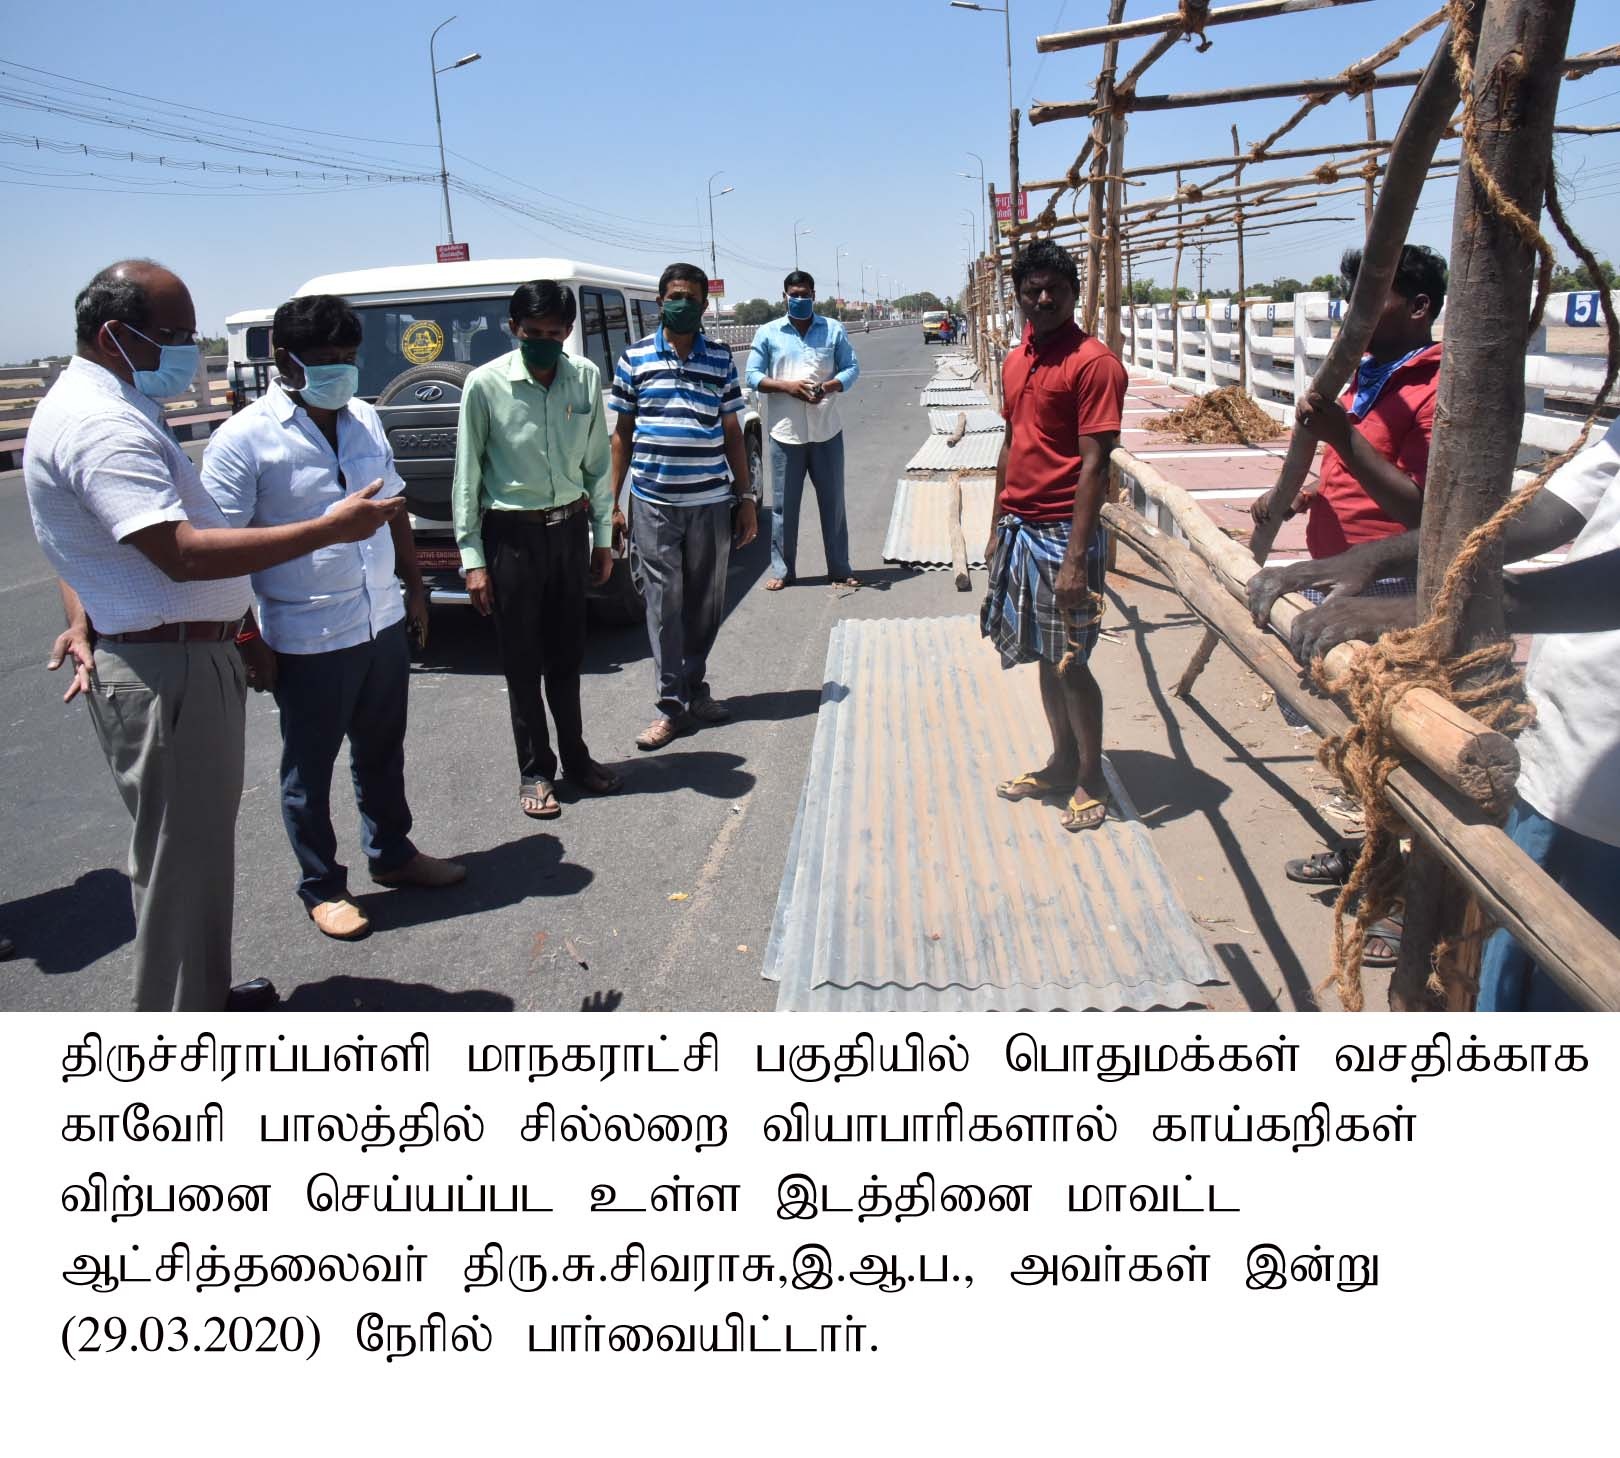 District Collector Inspected Temporary Retail Vegetable Market site at Cauvery Bridge